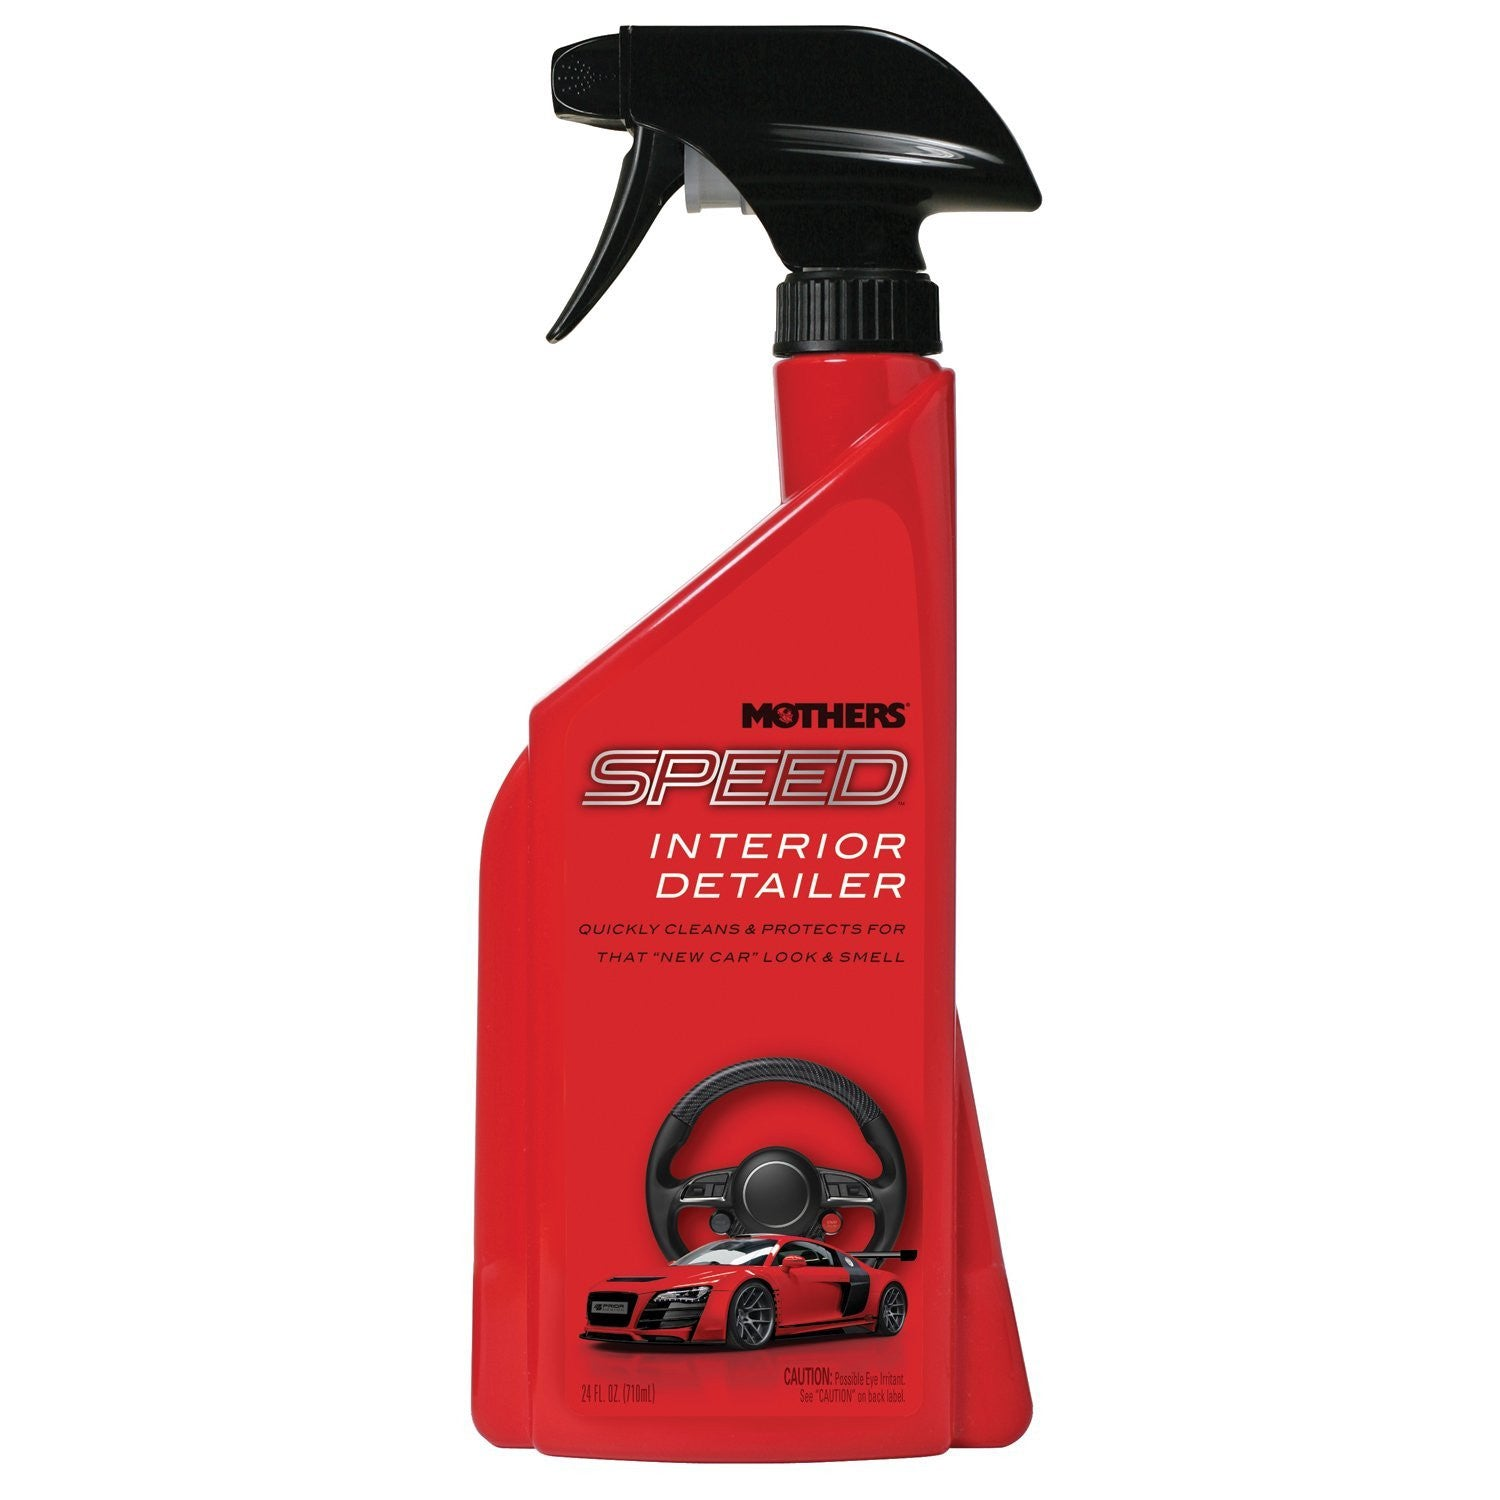 Mothers Speed Interior Detailer 24 oz.